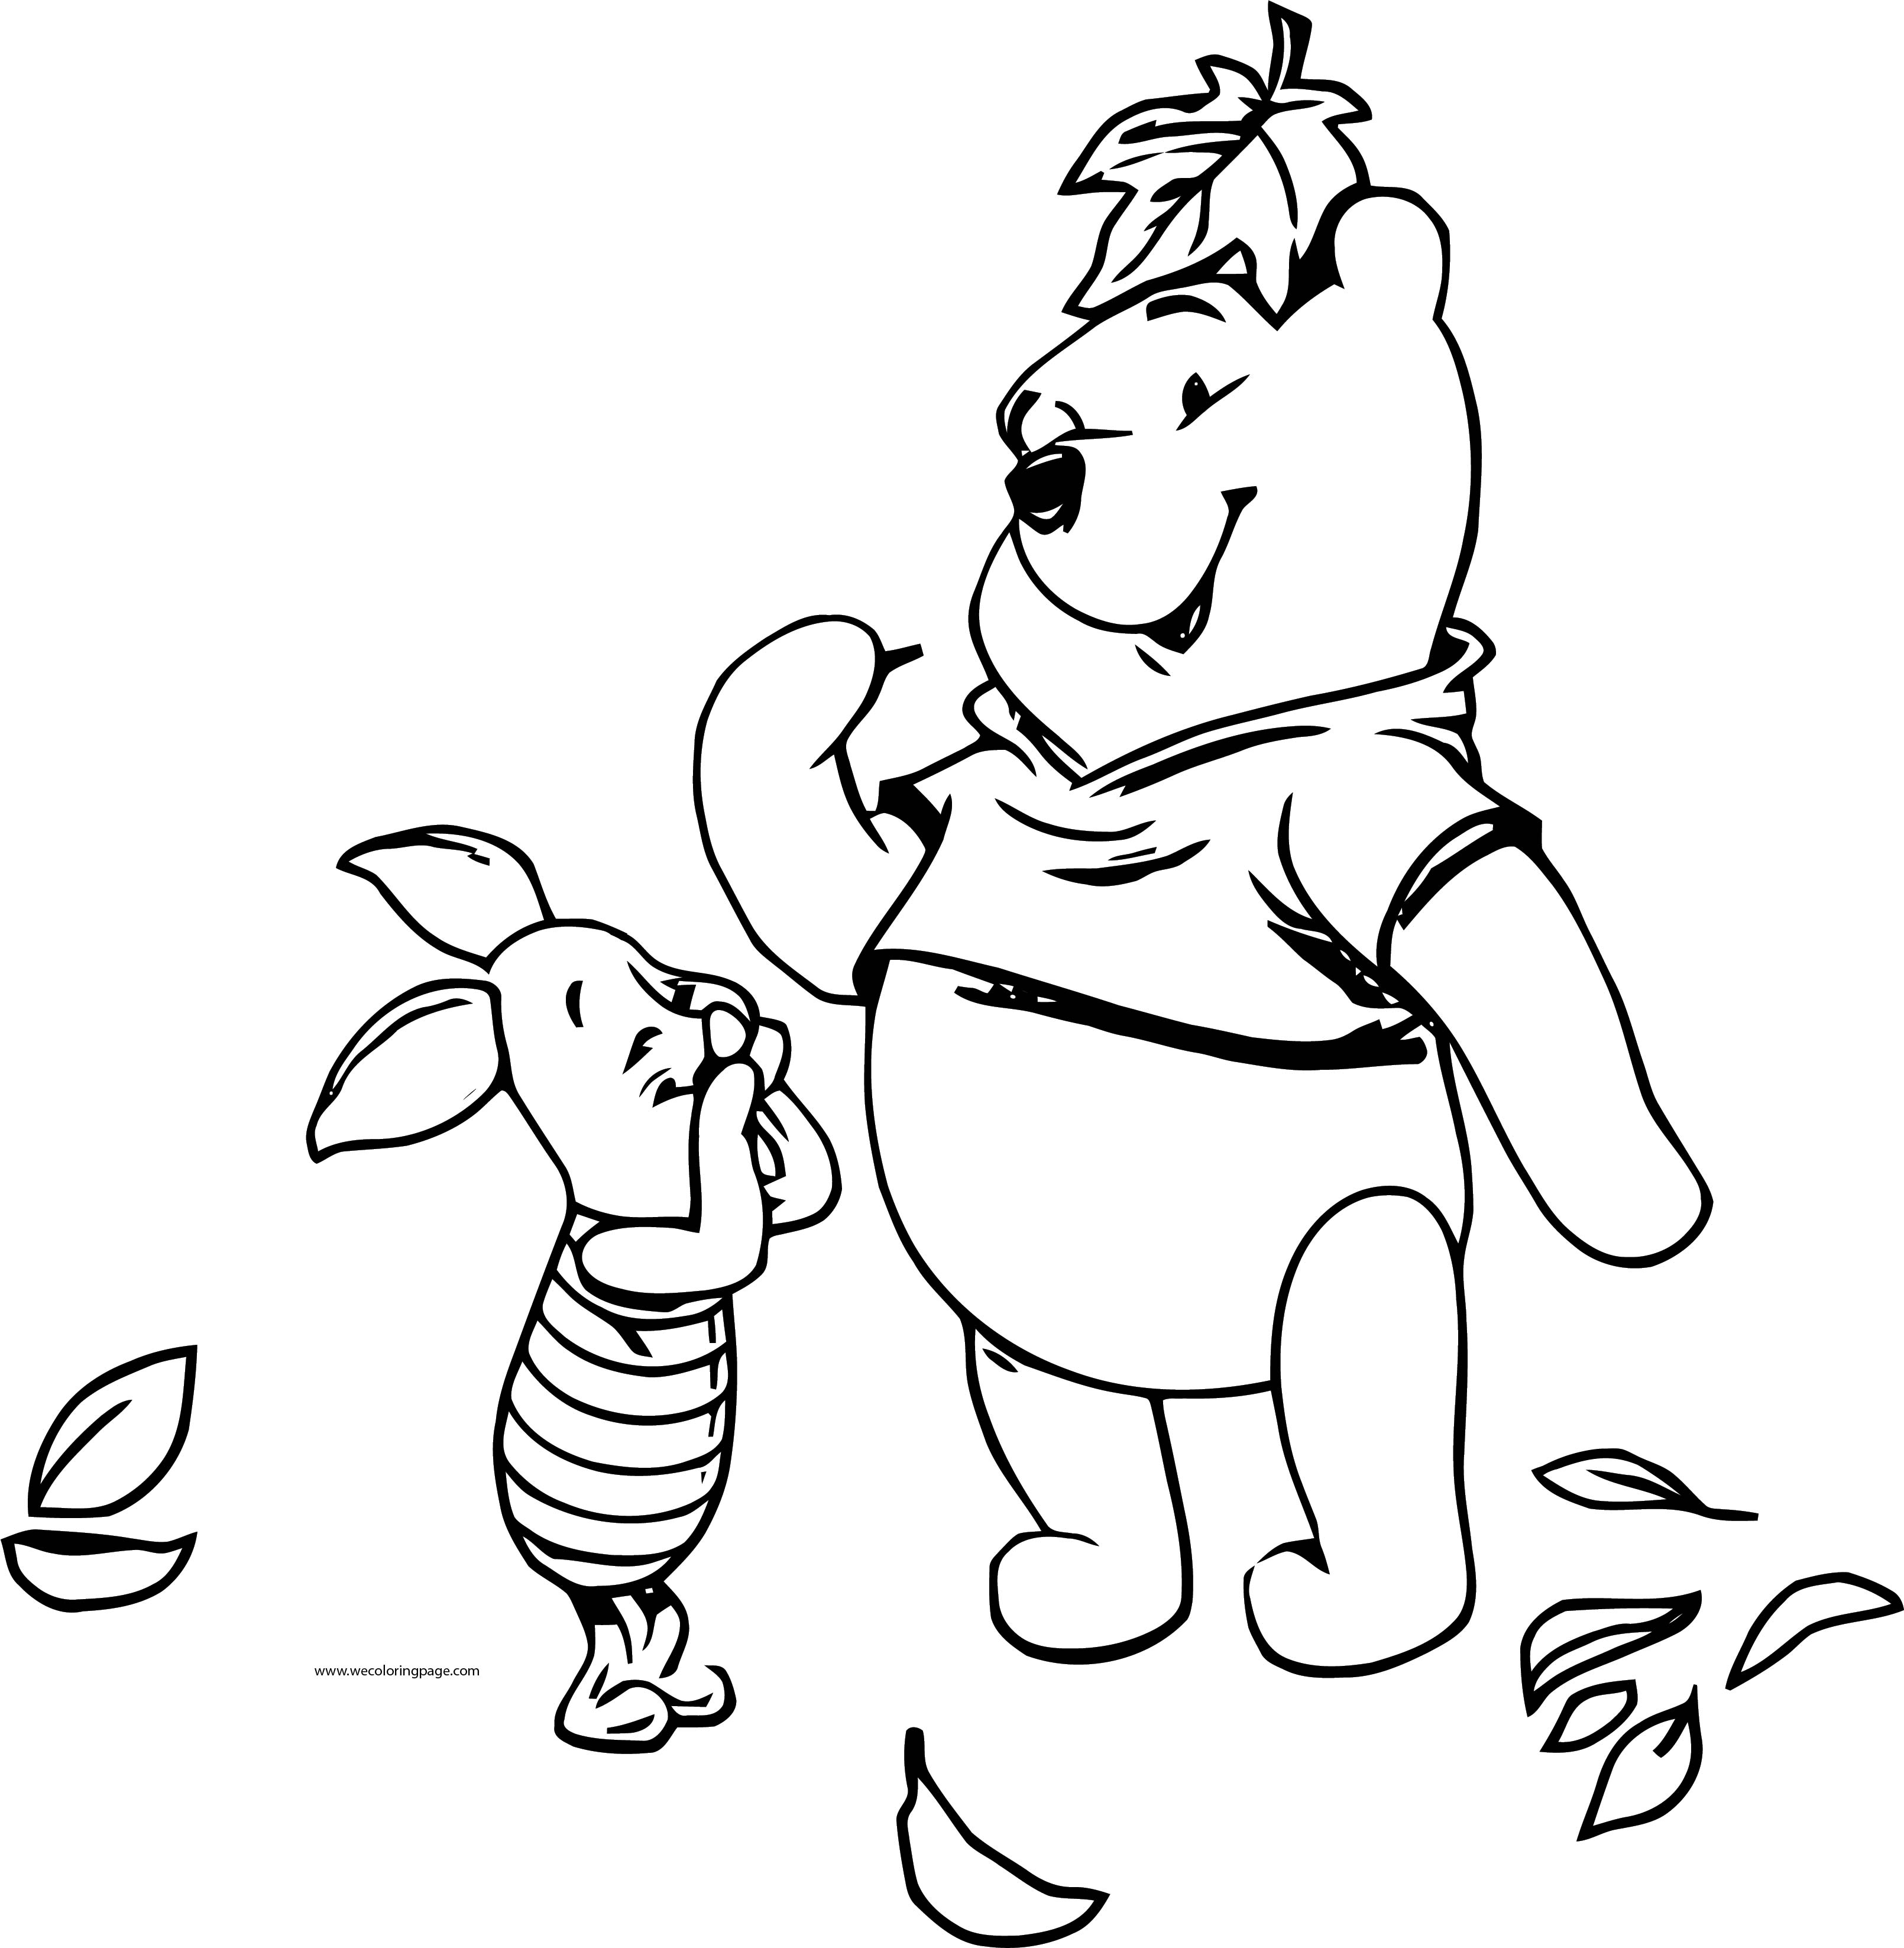 fall winnie the pooh piglet coloring page wecoloringpage com